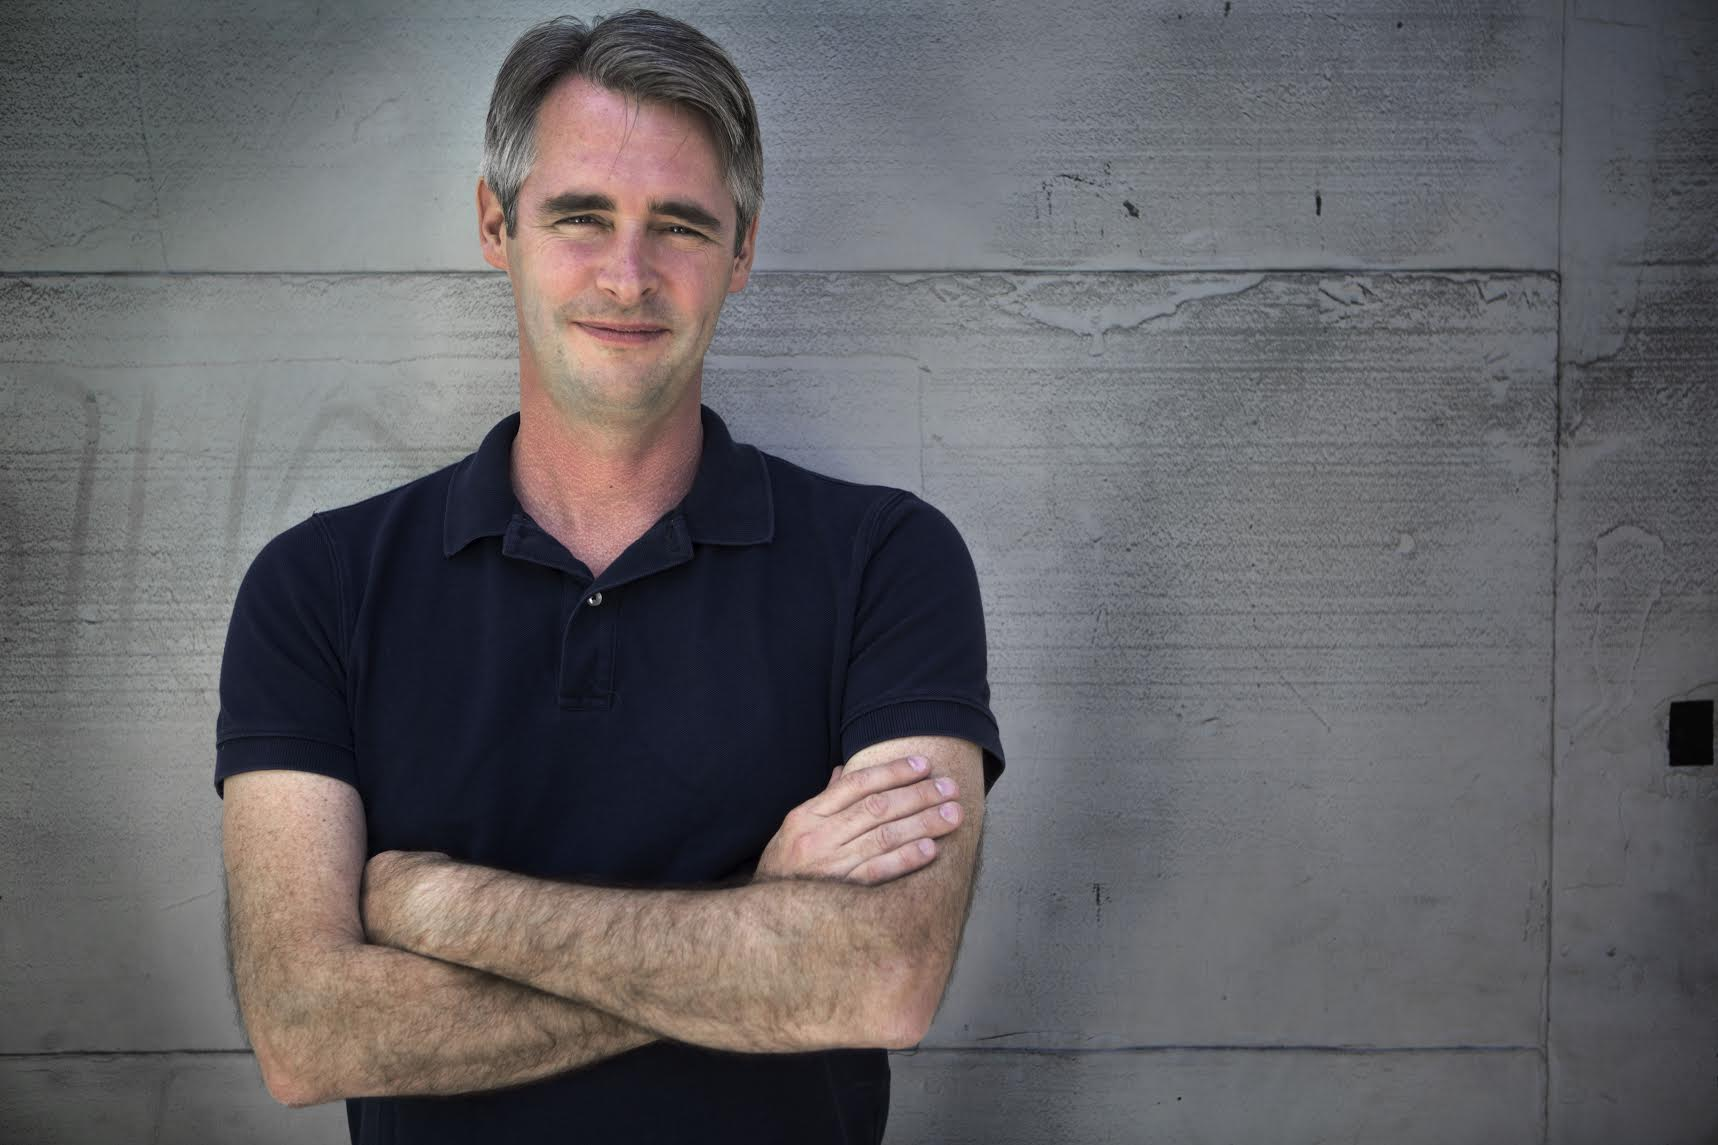 Flipboard CEO and co-founder Mike McCue